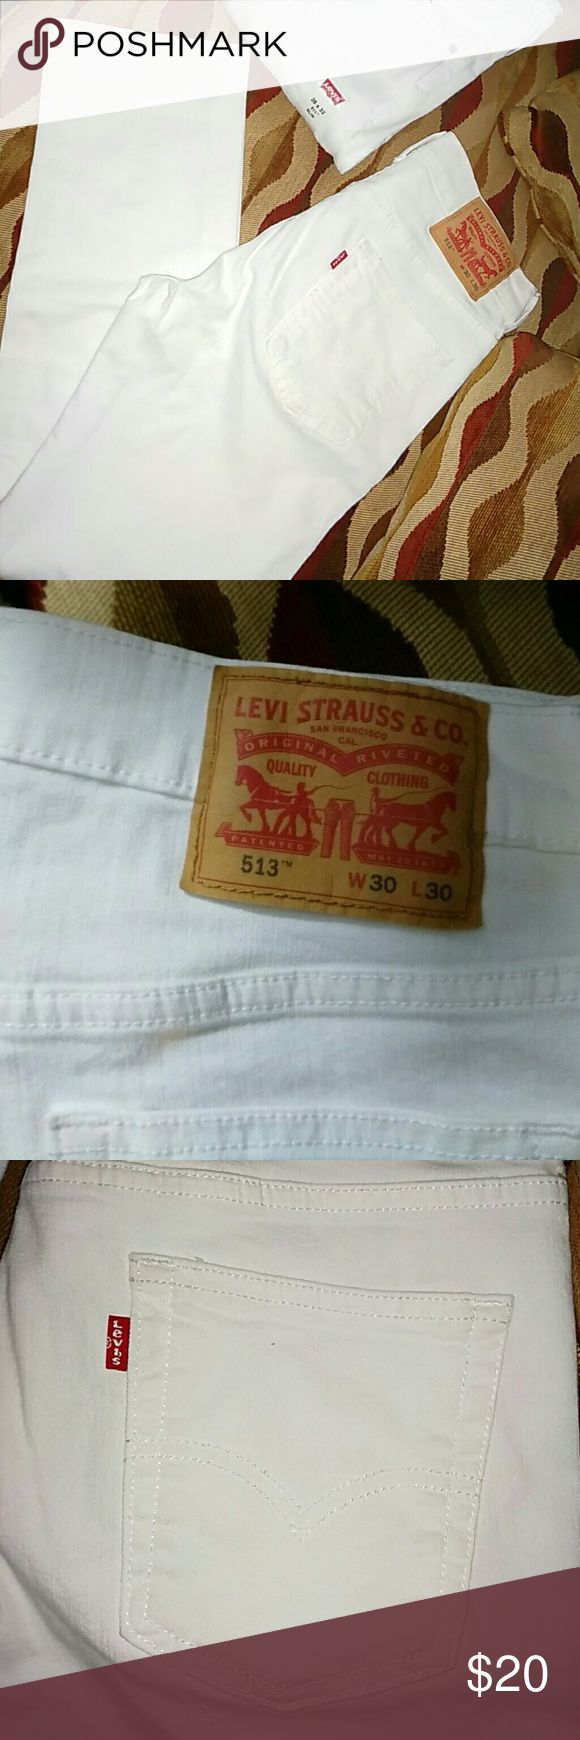 NWOT Womens White Levis 513 -sz 30/30 Womens new white style 513 Levis. Size 30 waist and 30 length. Straight Levis Jeans Straight Leg